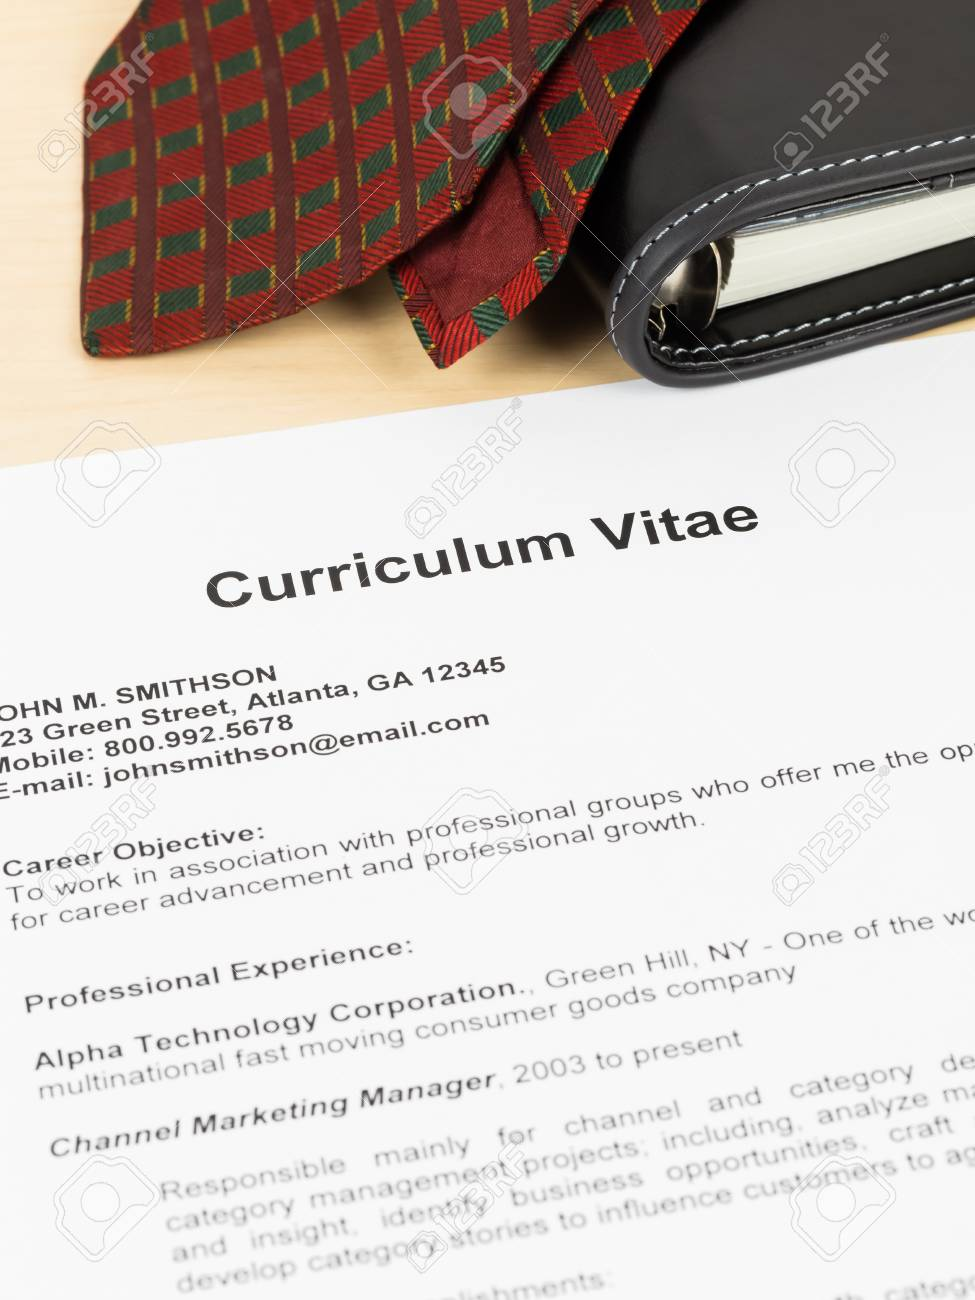 Curriculum Vitae Or CV With Organizer And Neck Tie; Concept Job ...